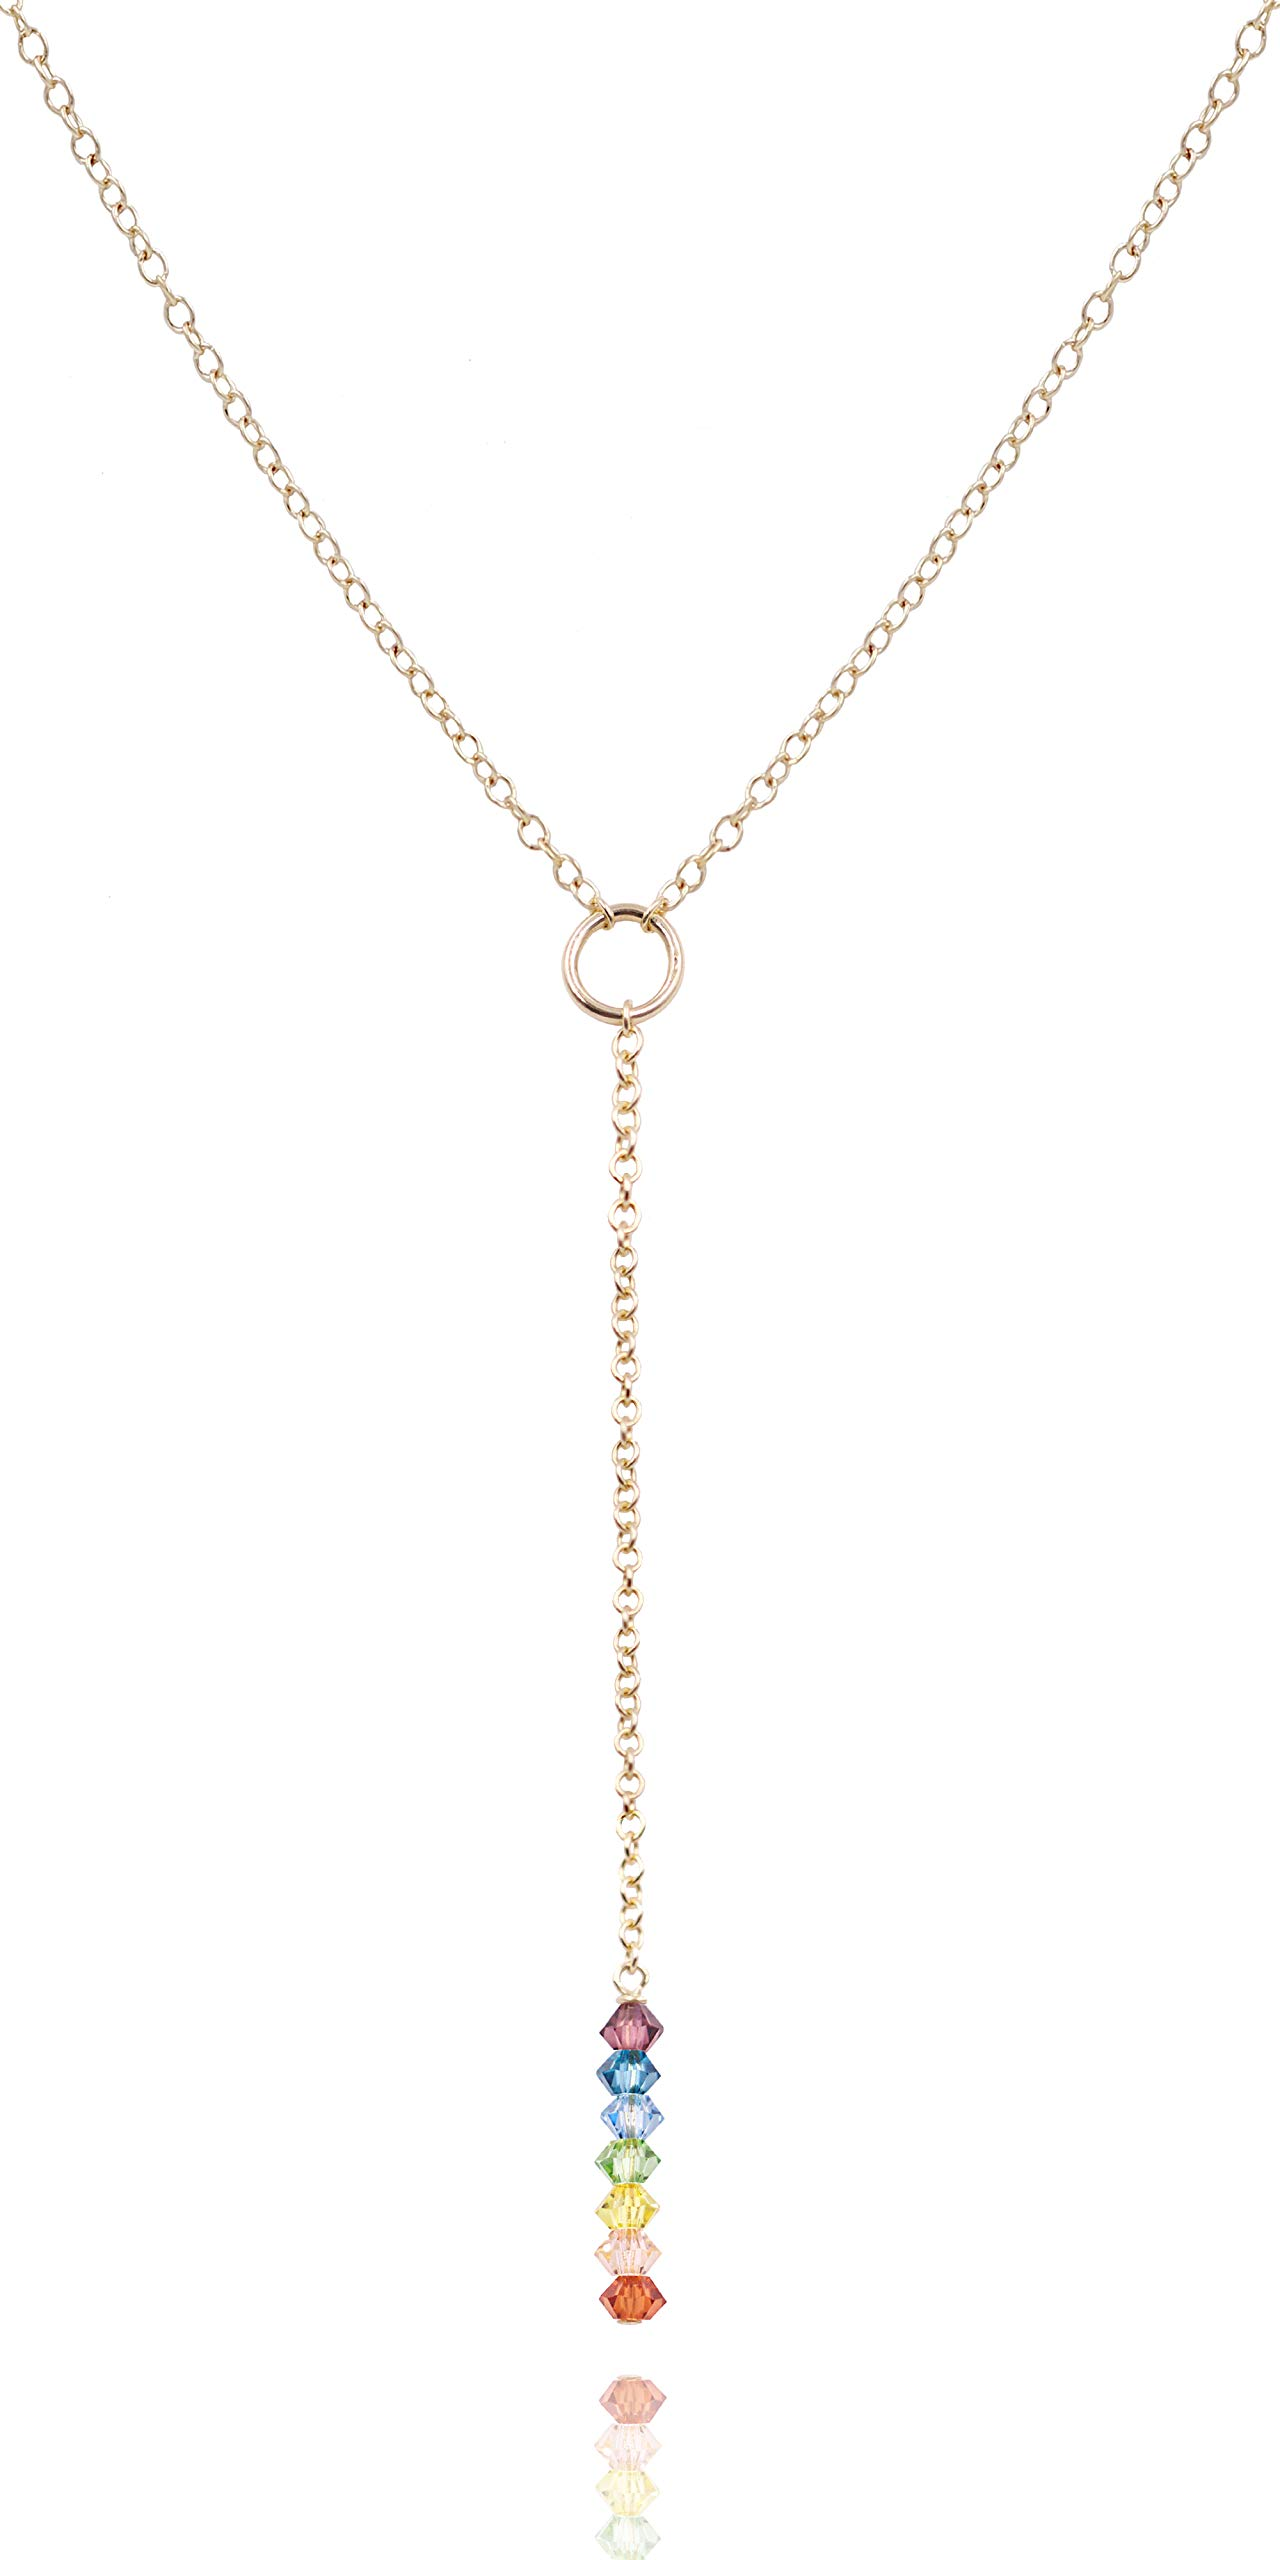 MaeMae 7 Chakras Necklace Crystal 14K Gold Filled Y Necklace Lariat, Balance & Protection 16-18 by MaeMae Jewelry